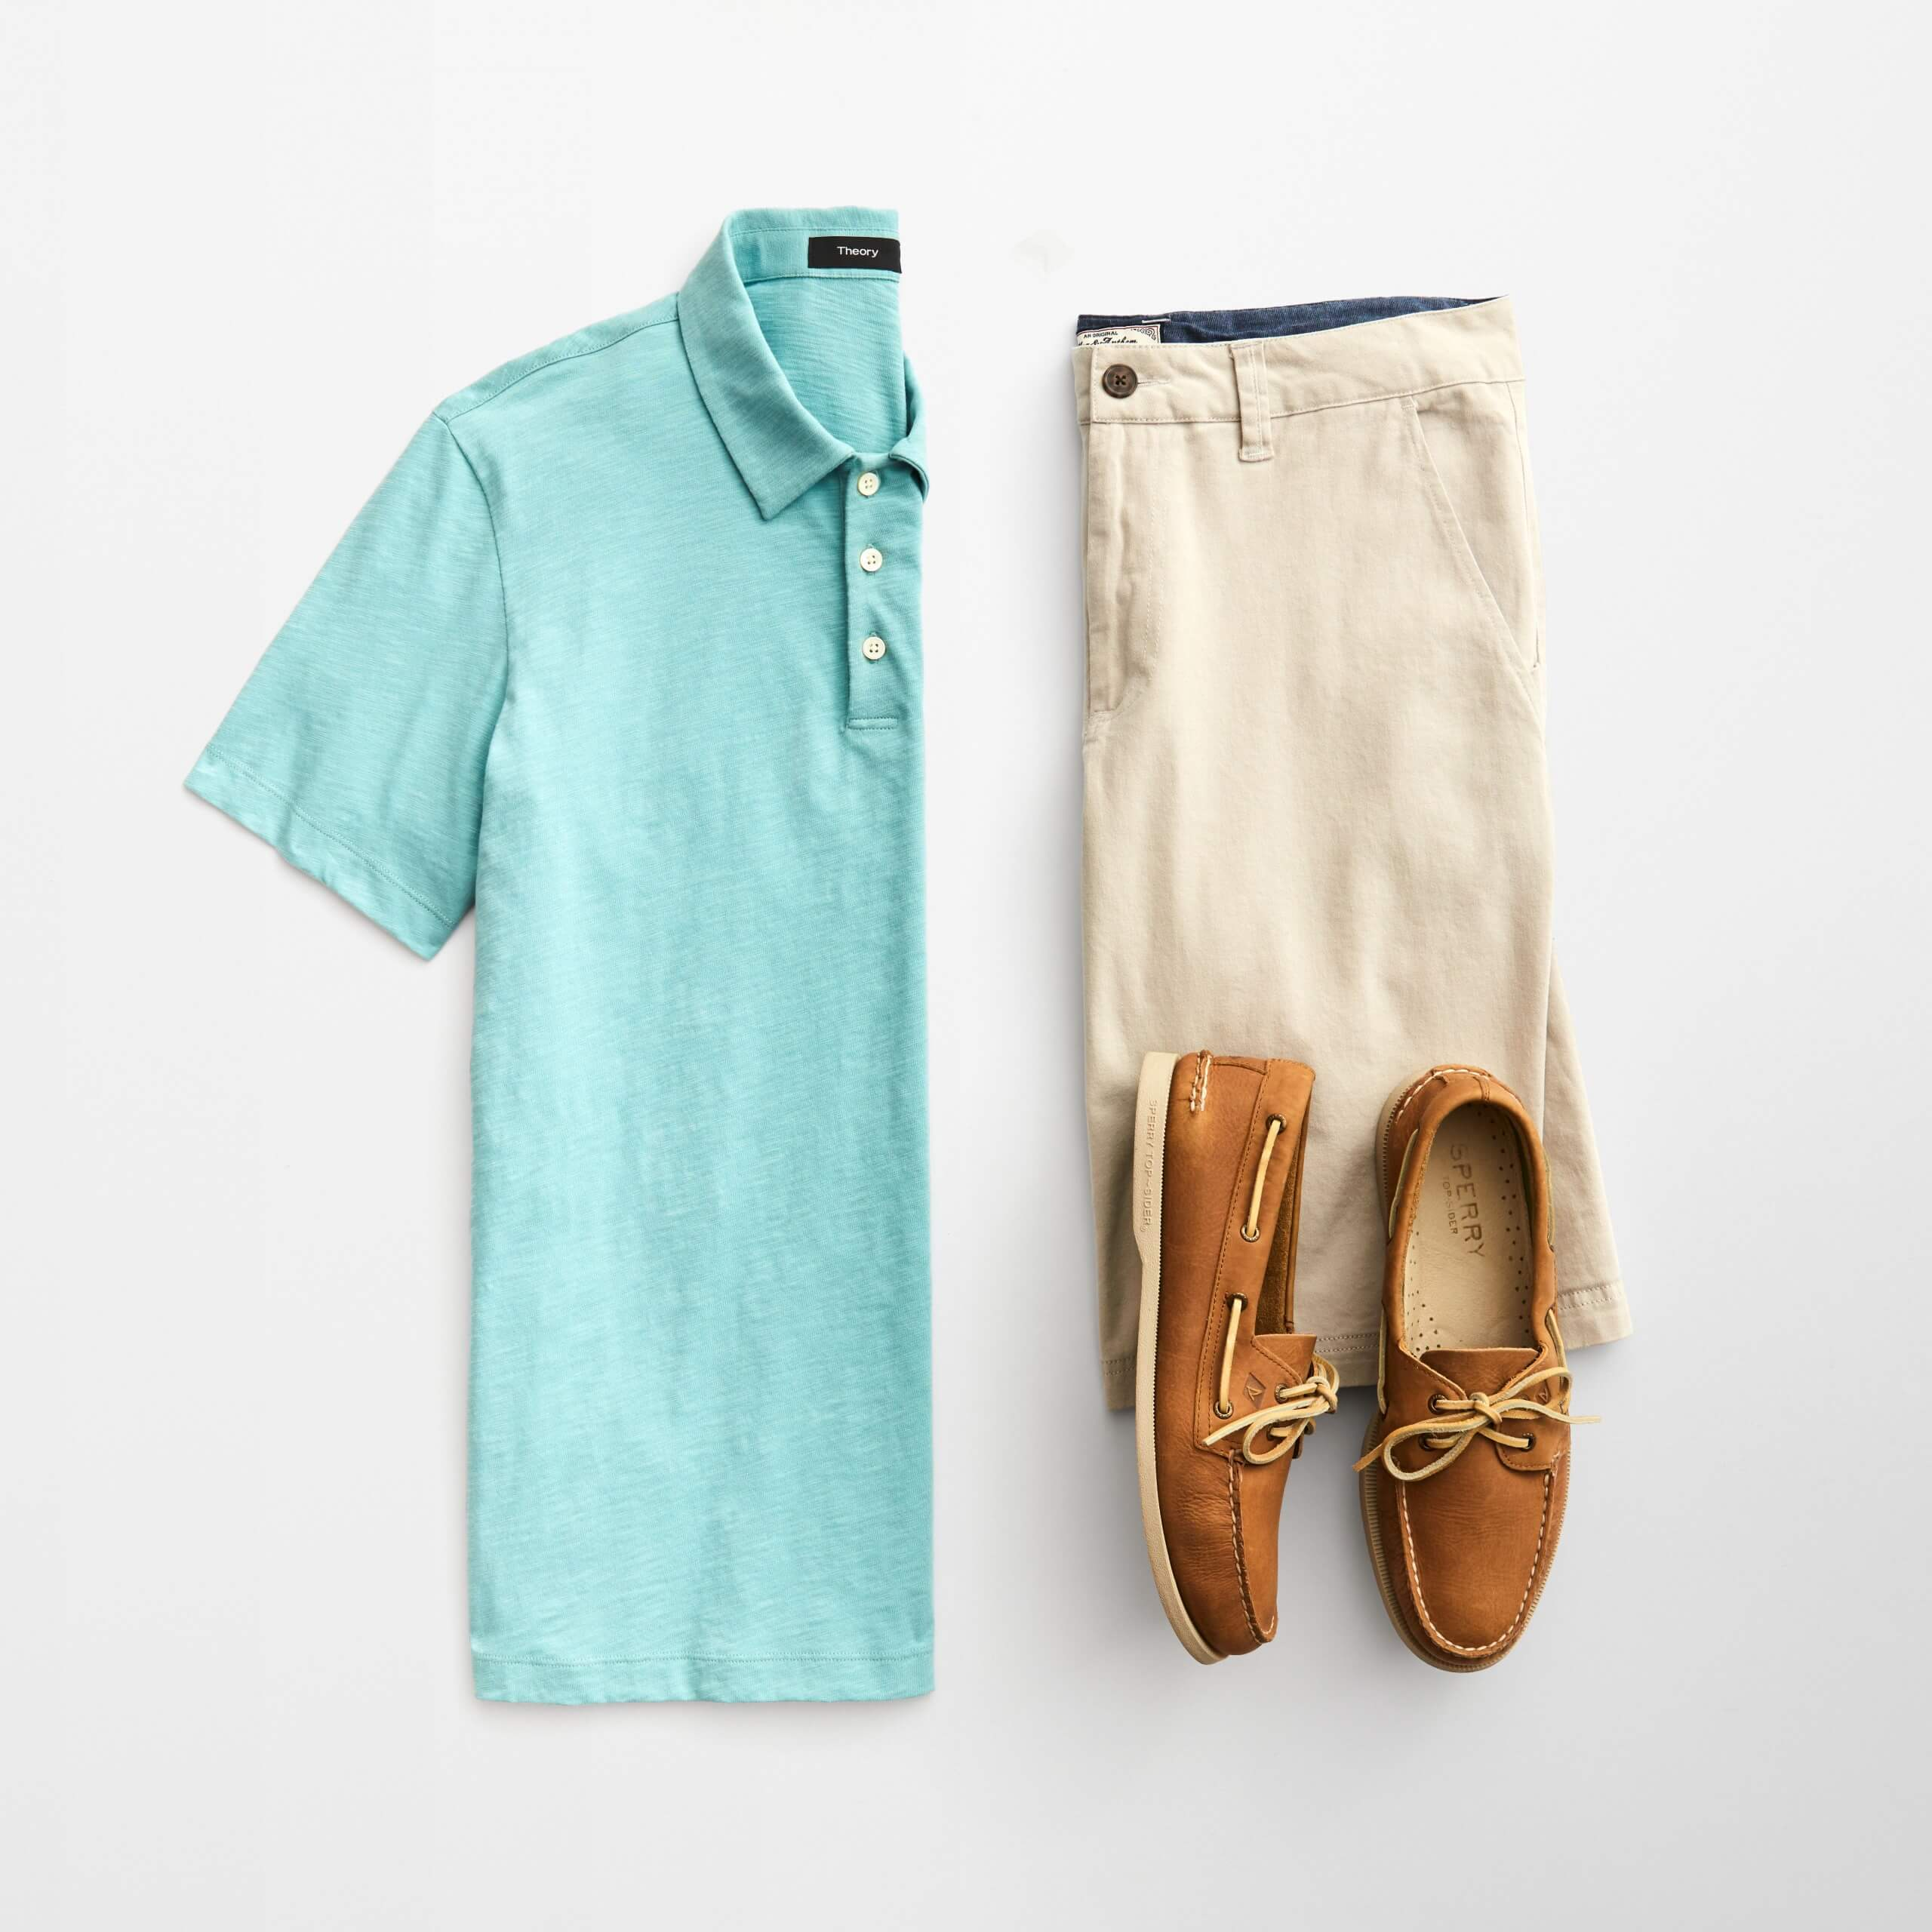 Stitch Fix Men's outfit laydown featuring a light blue polo, khaki shorts and brown boat shoes.